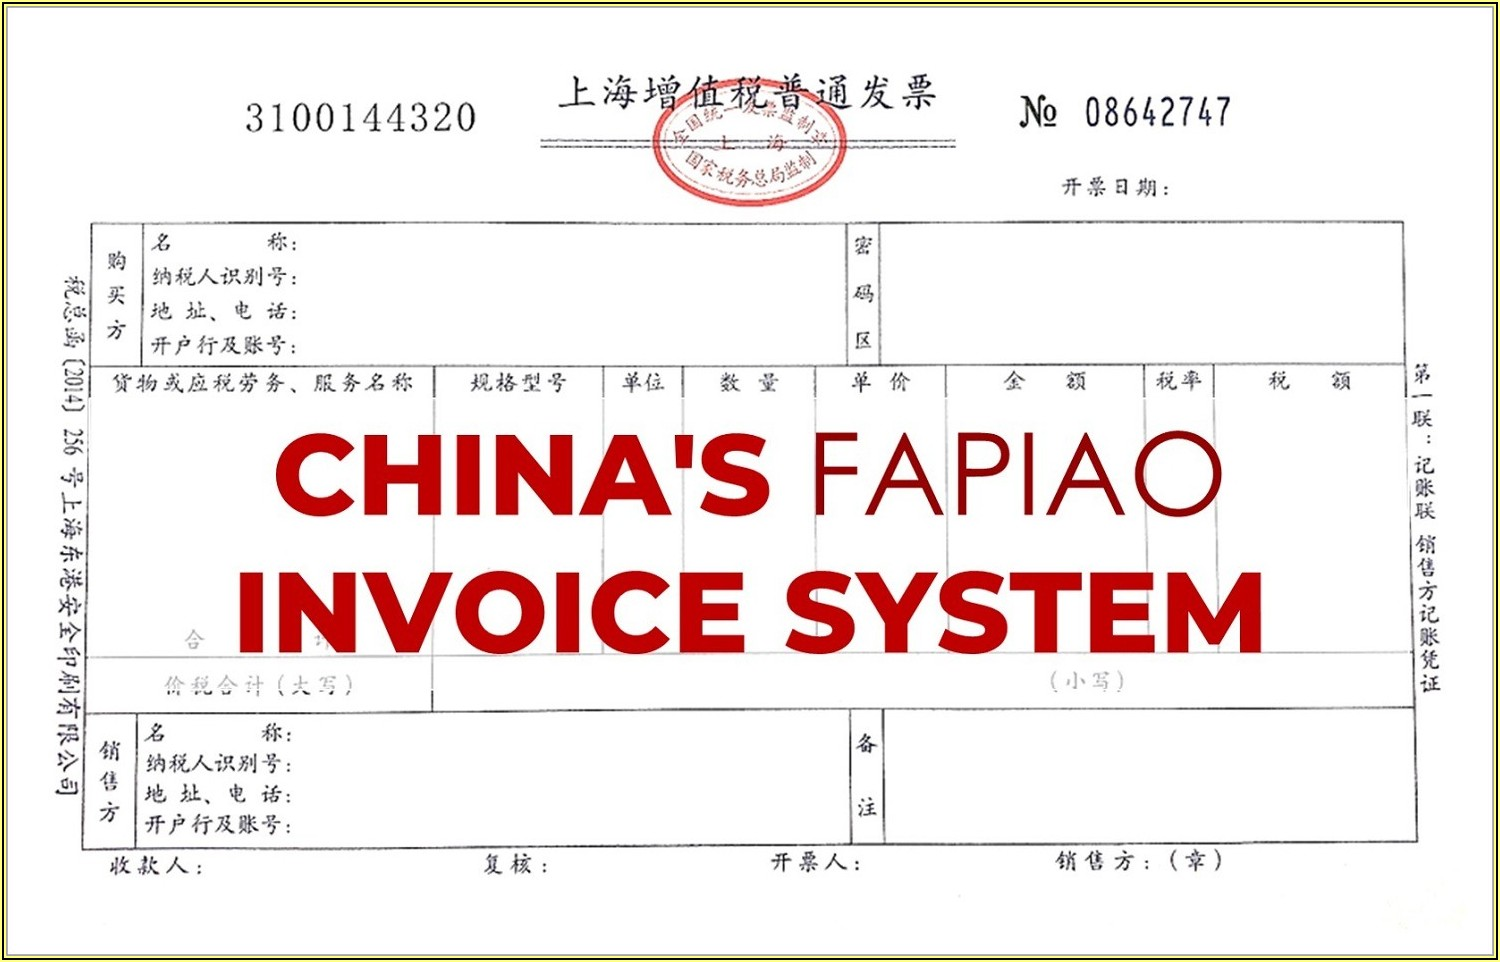 Proforma Invoice Meaning In Chinese